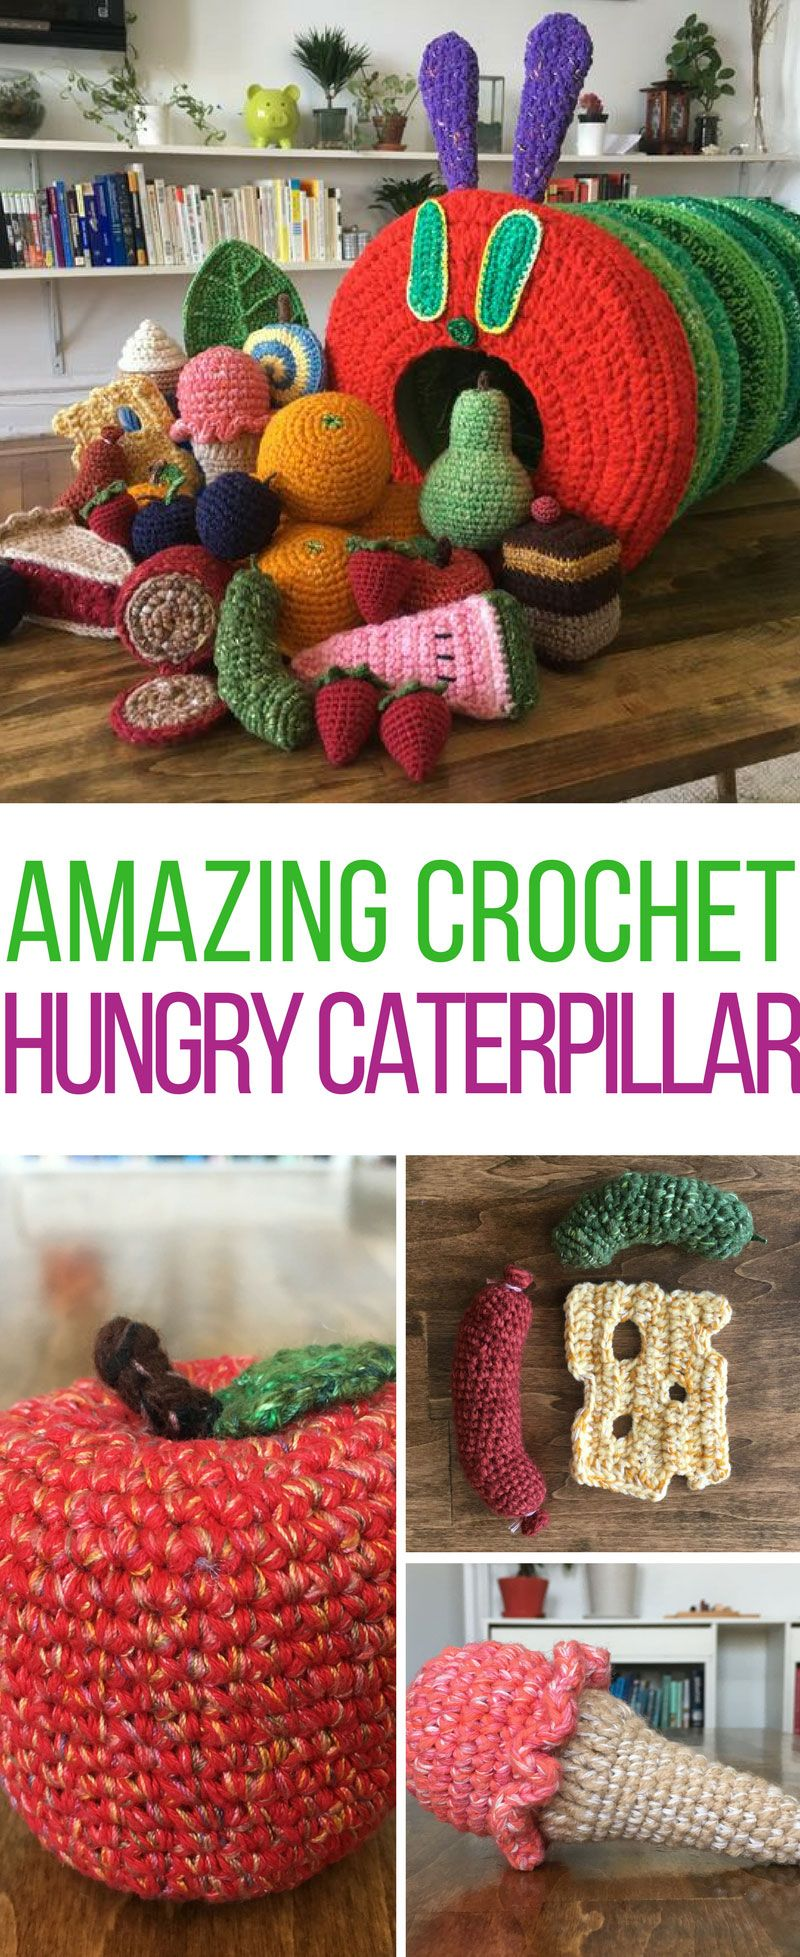 This Crochet Hungry Caterpillar Will Totally Blow Your Mind | Hungry ...